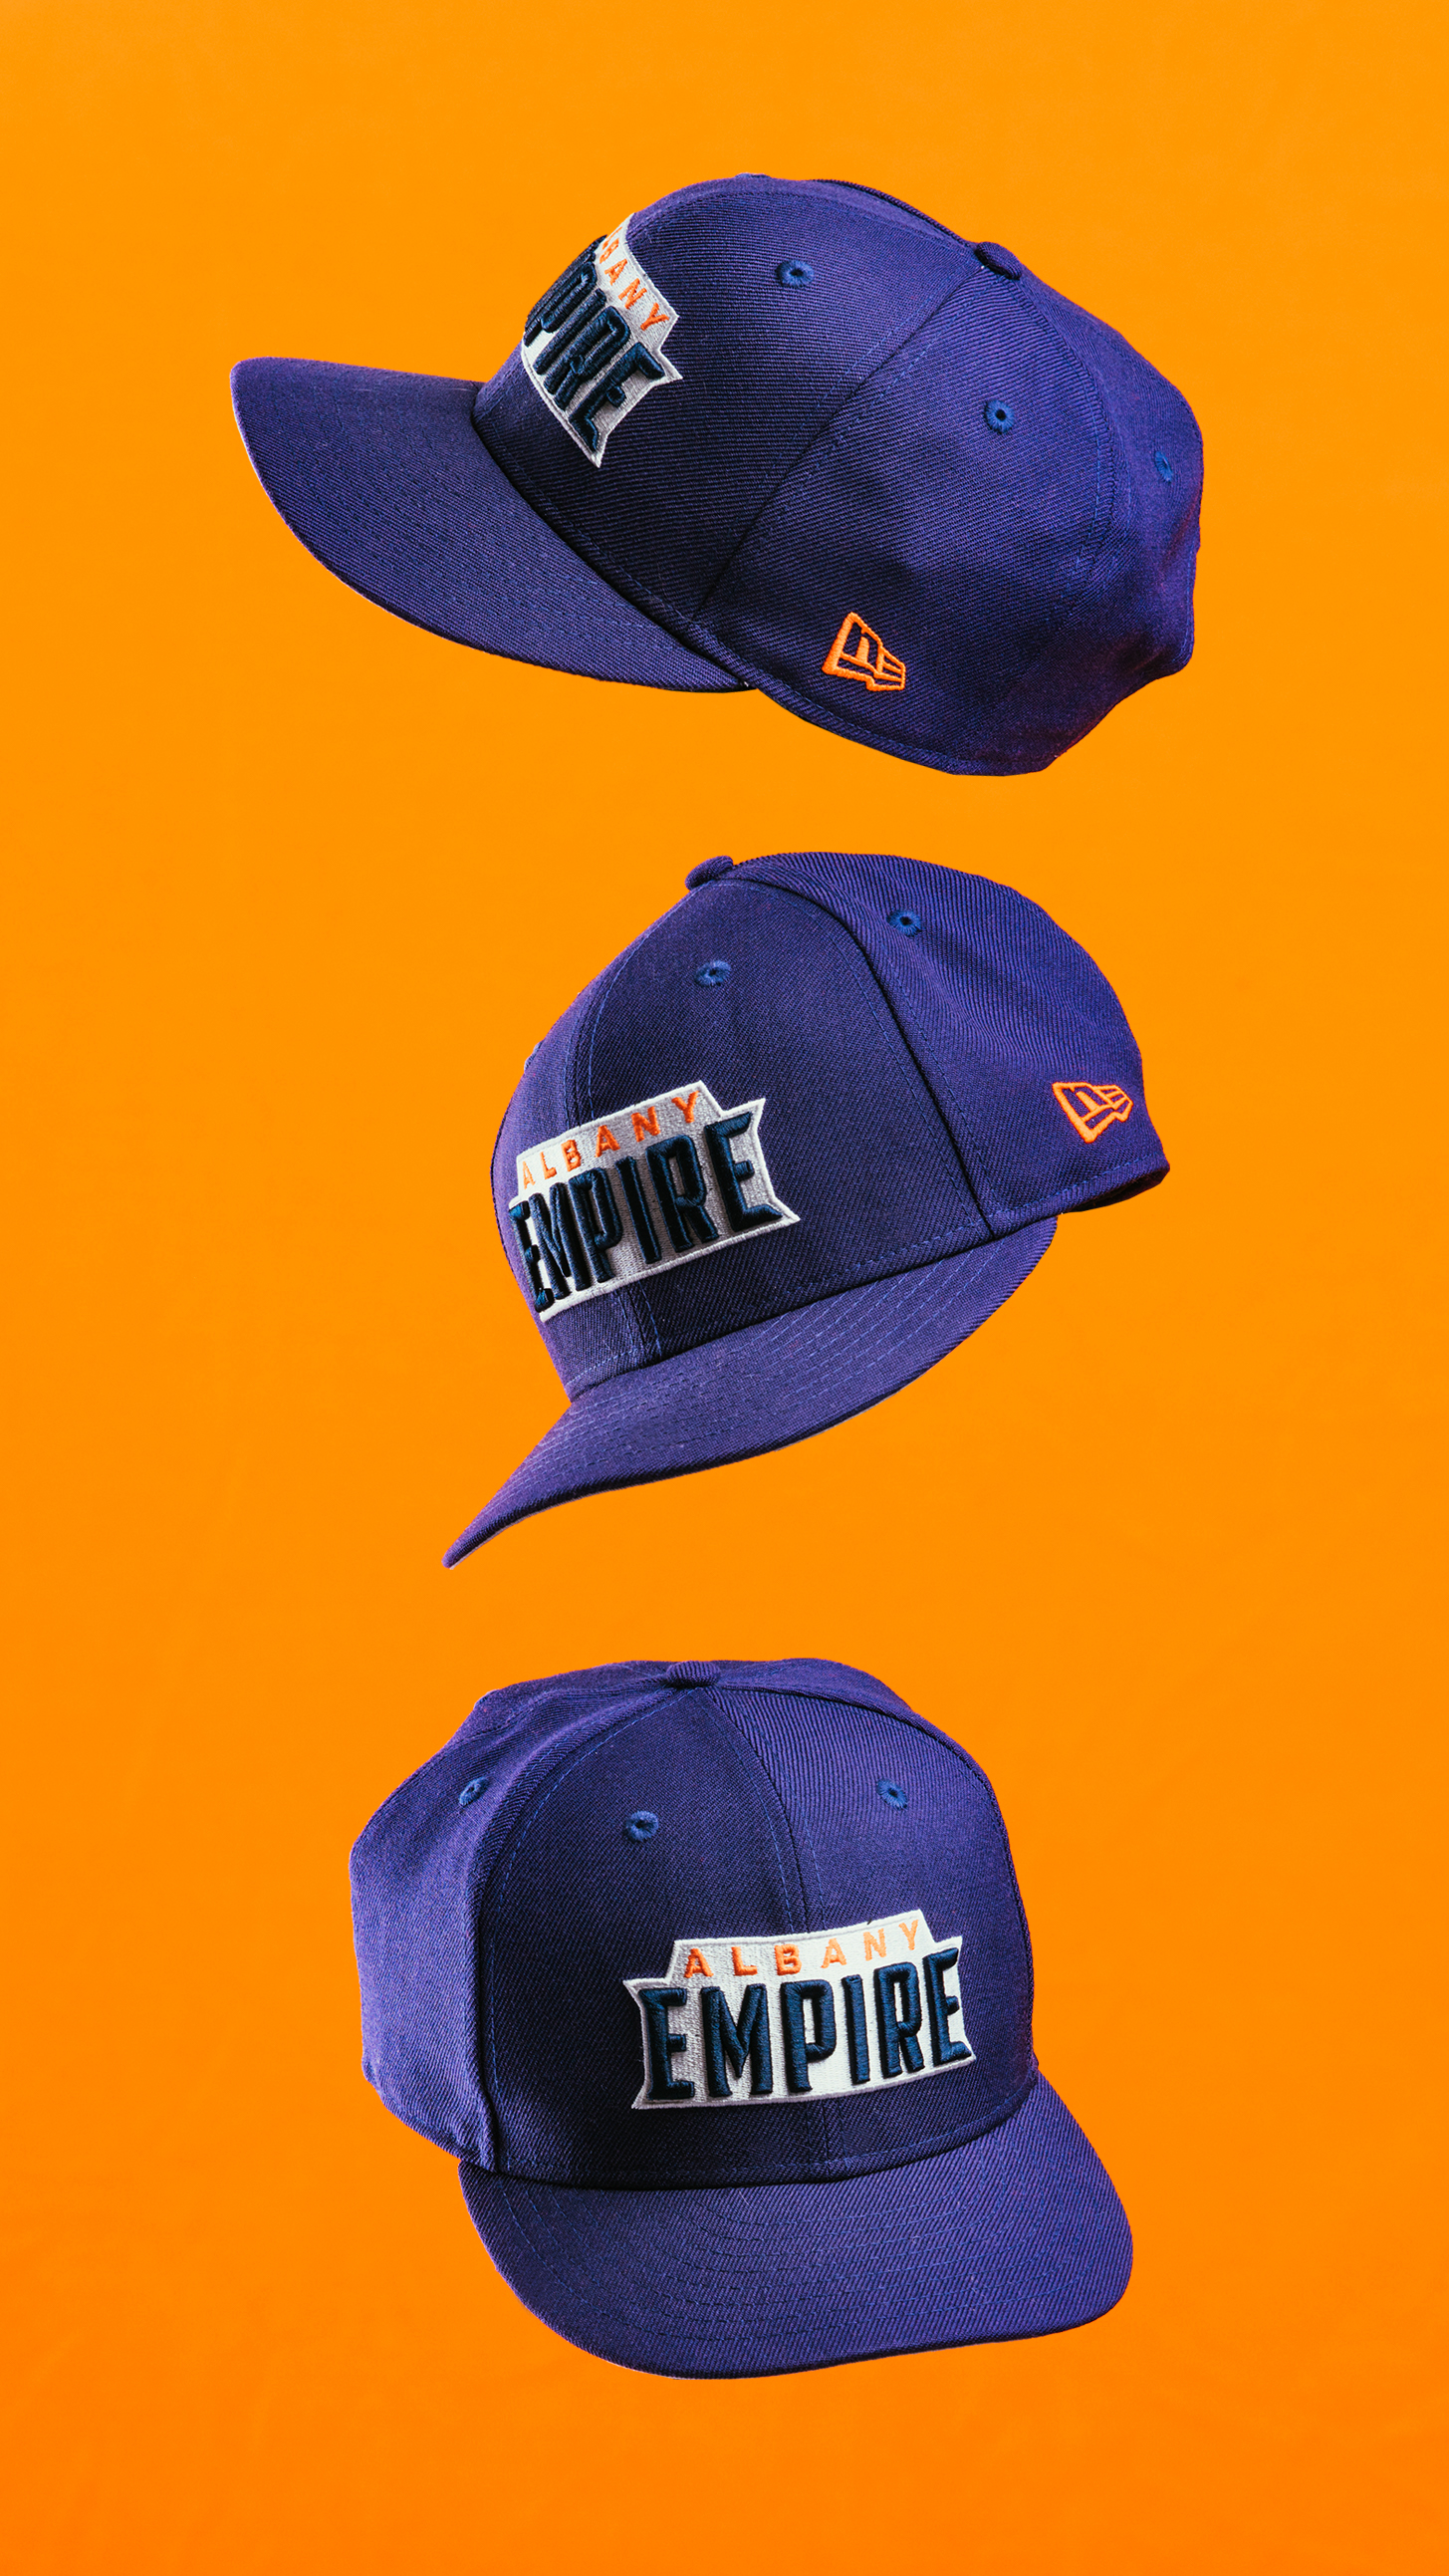 Albany Empire x New Era